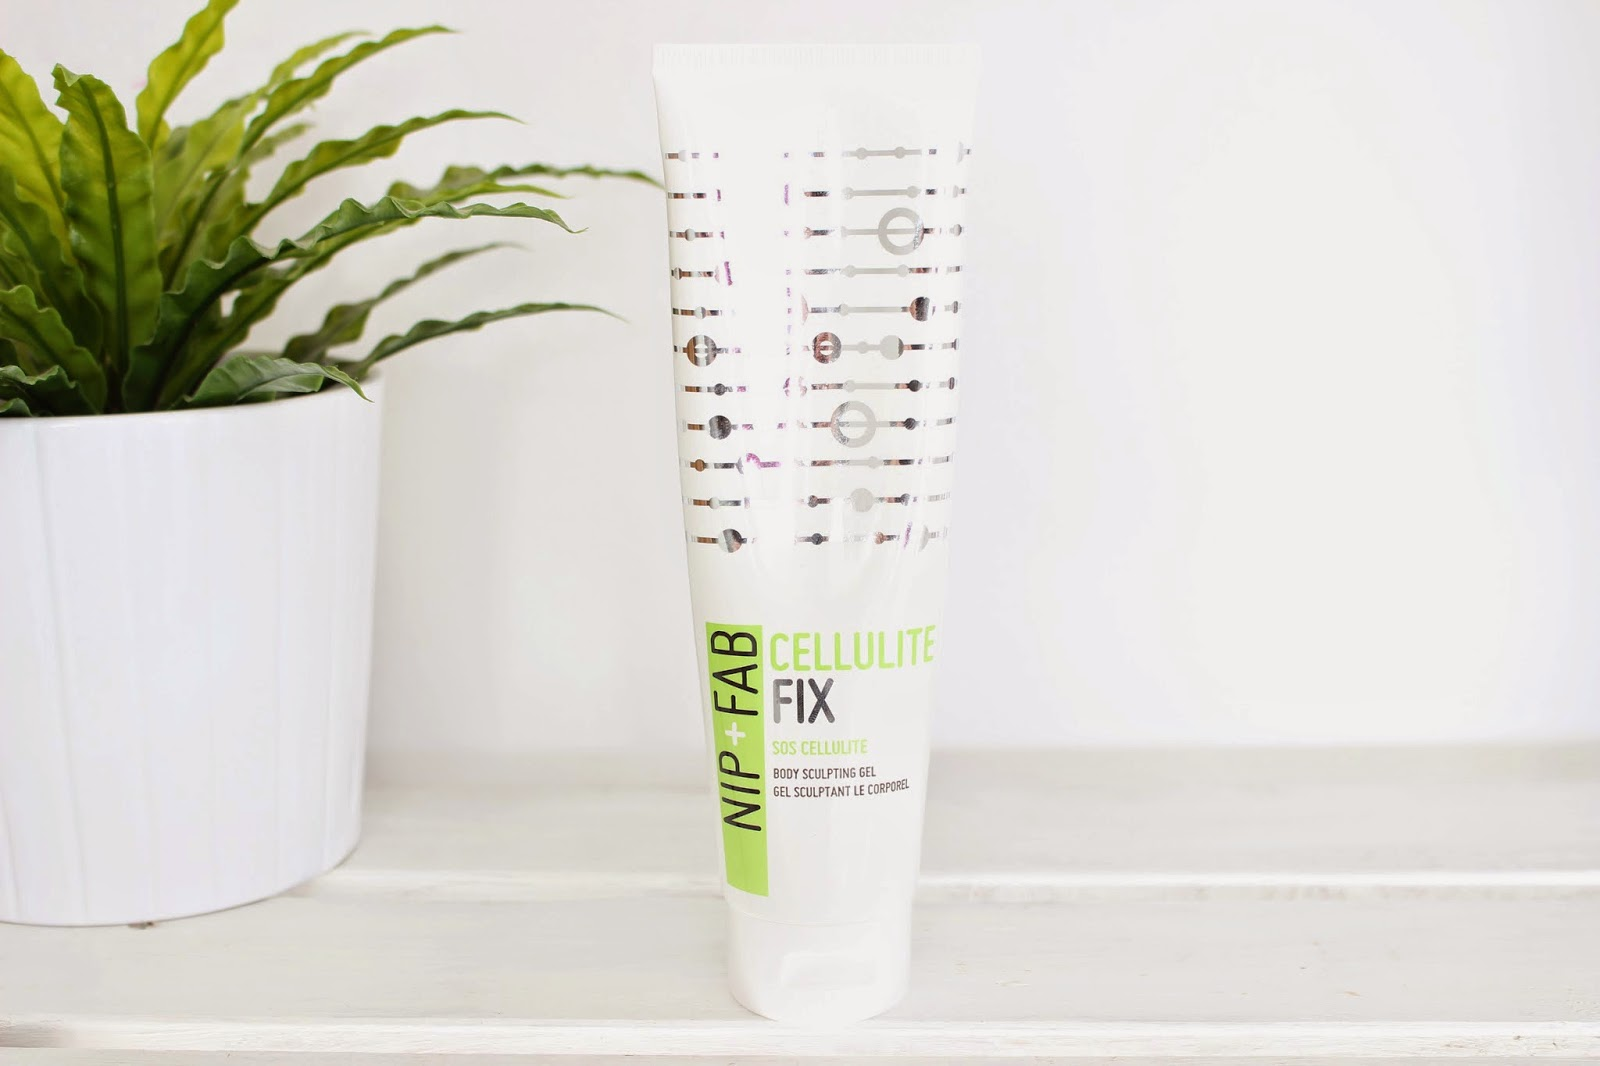 Nip+Fab Cellulite Fix Body Sculpting Gel